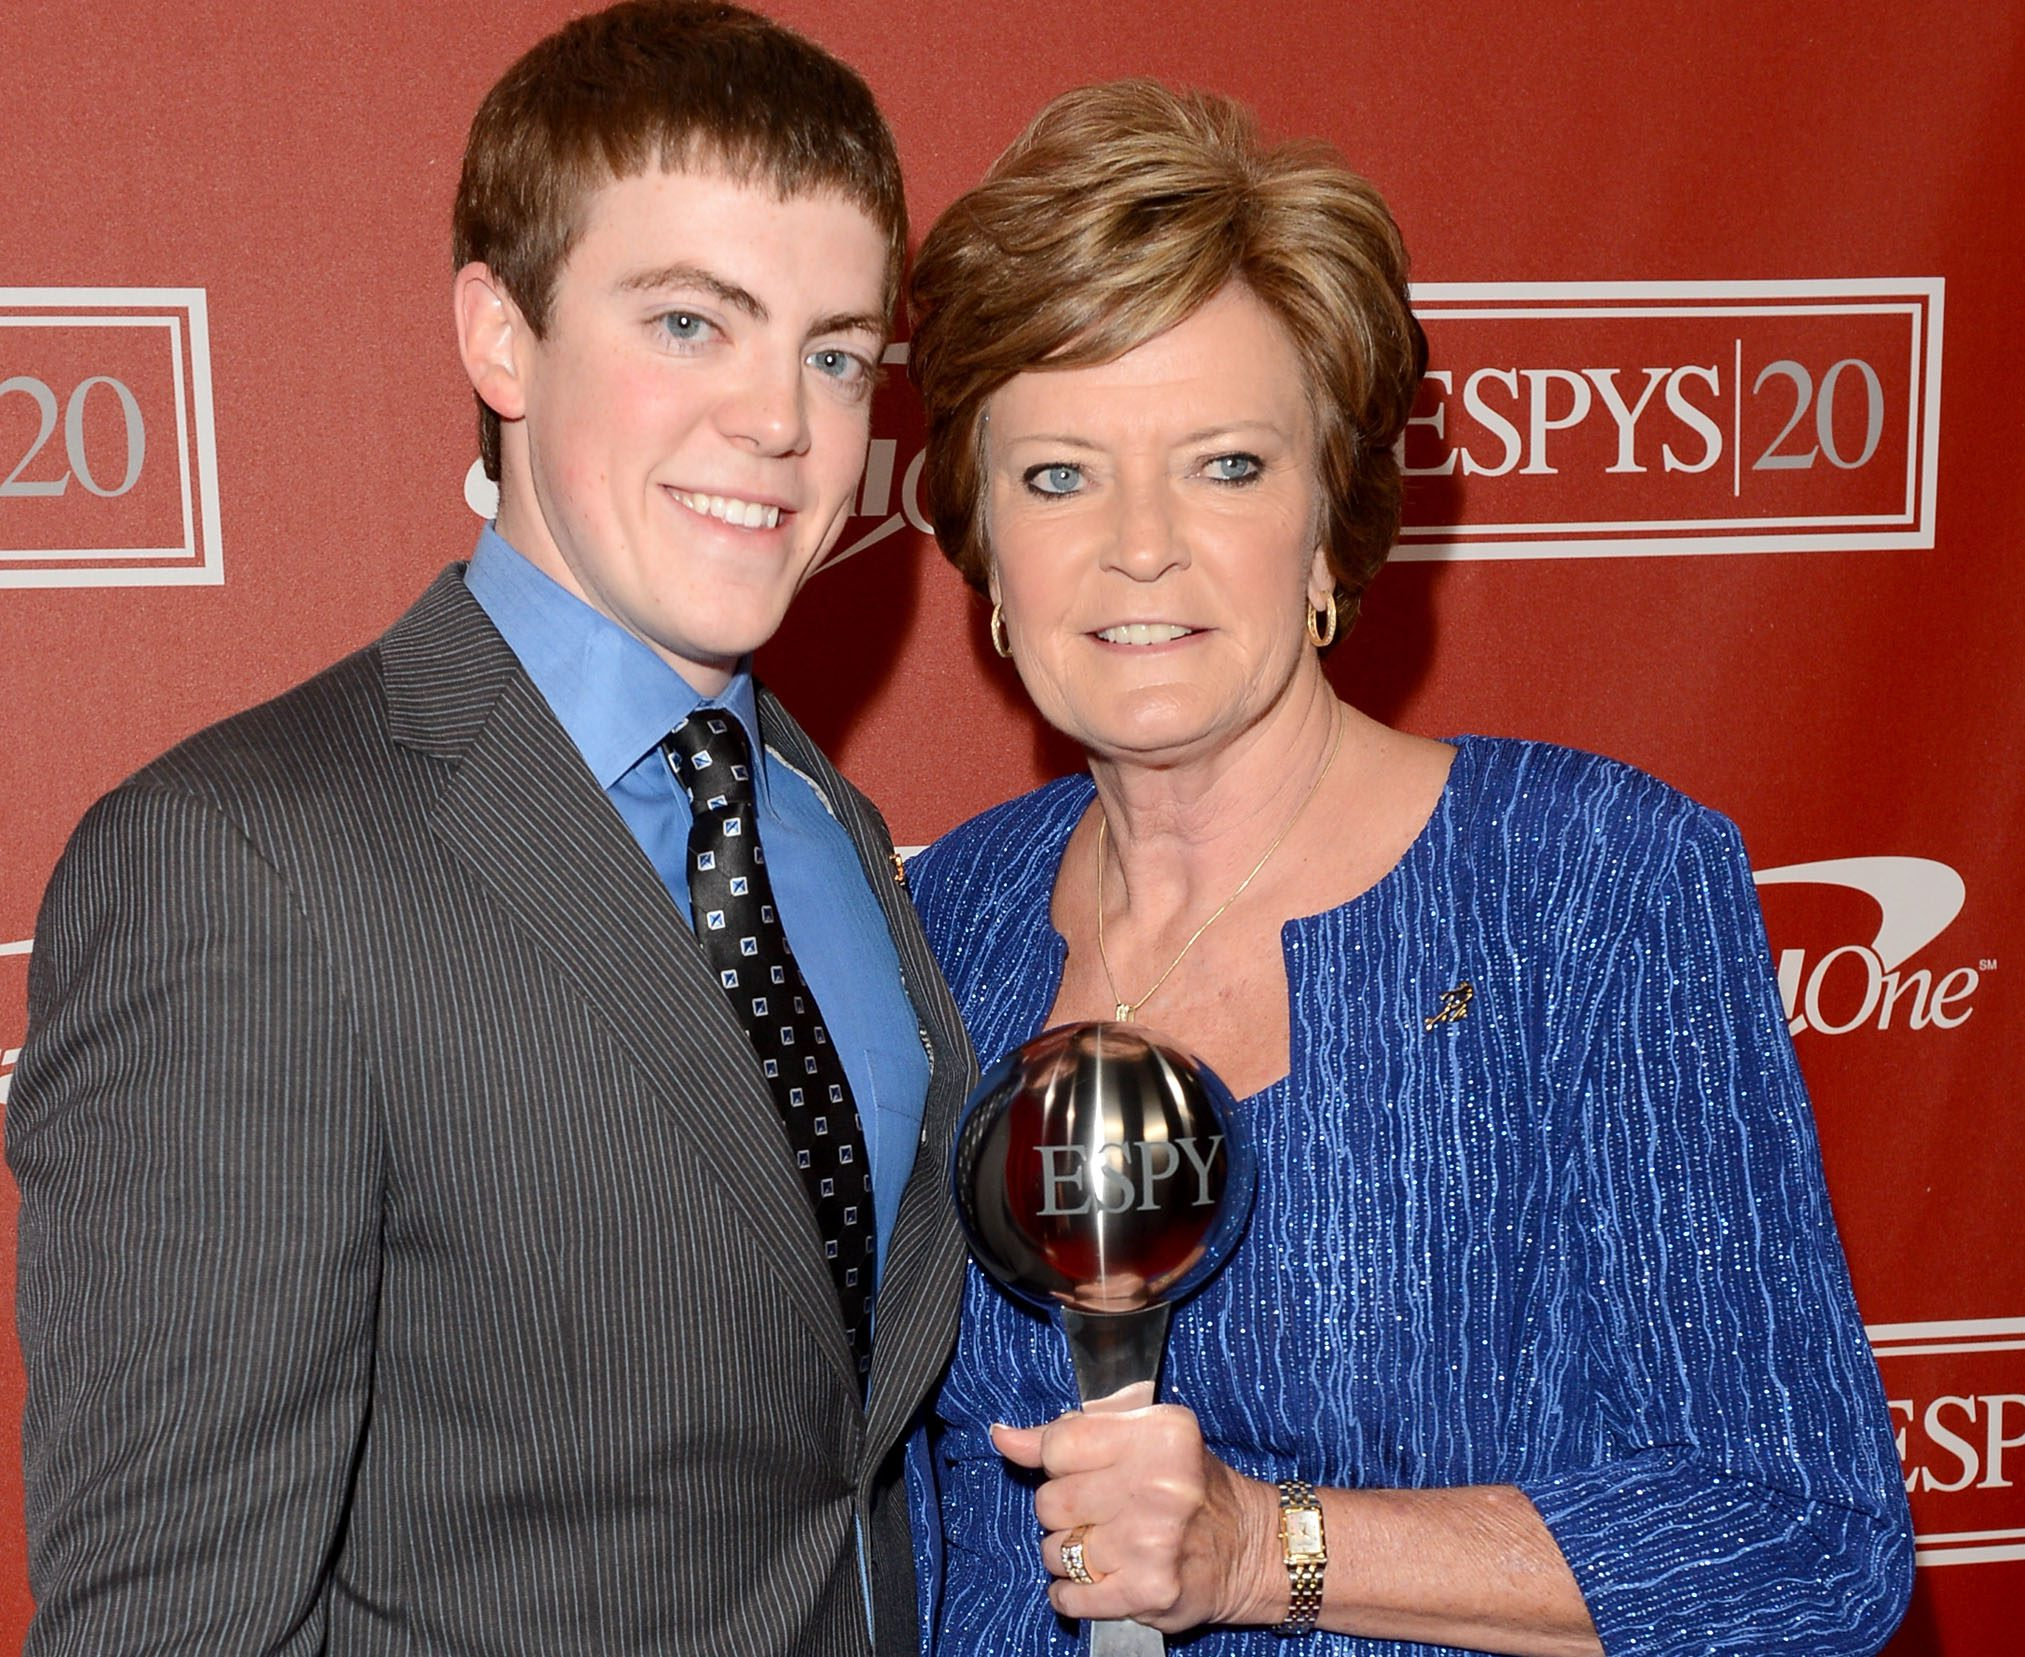 Pat Summitt with her son Tyler at the 2012 ESPY Awards. (Getty)